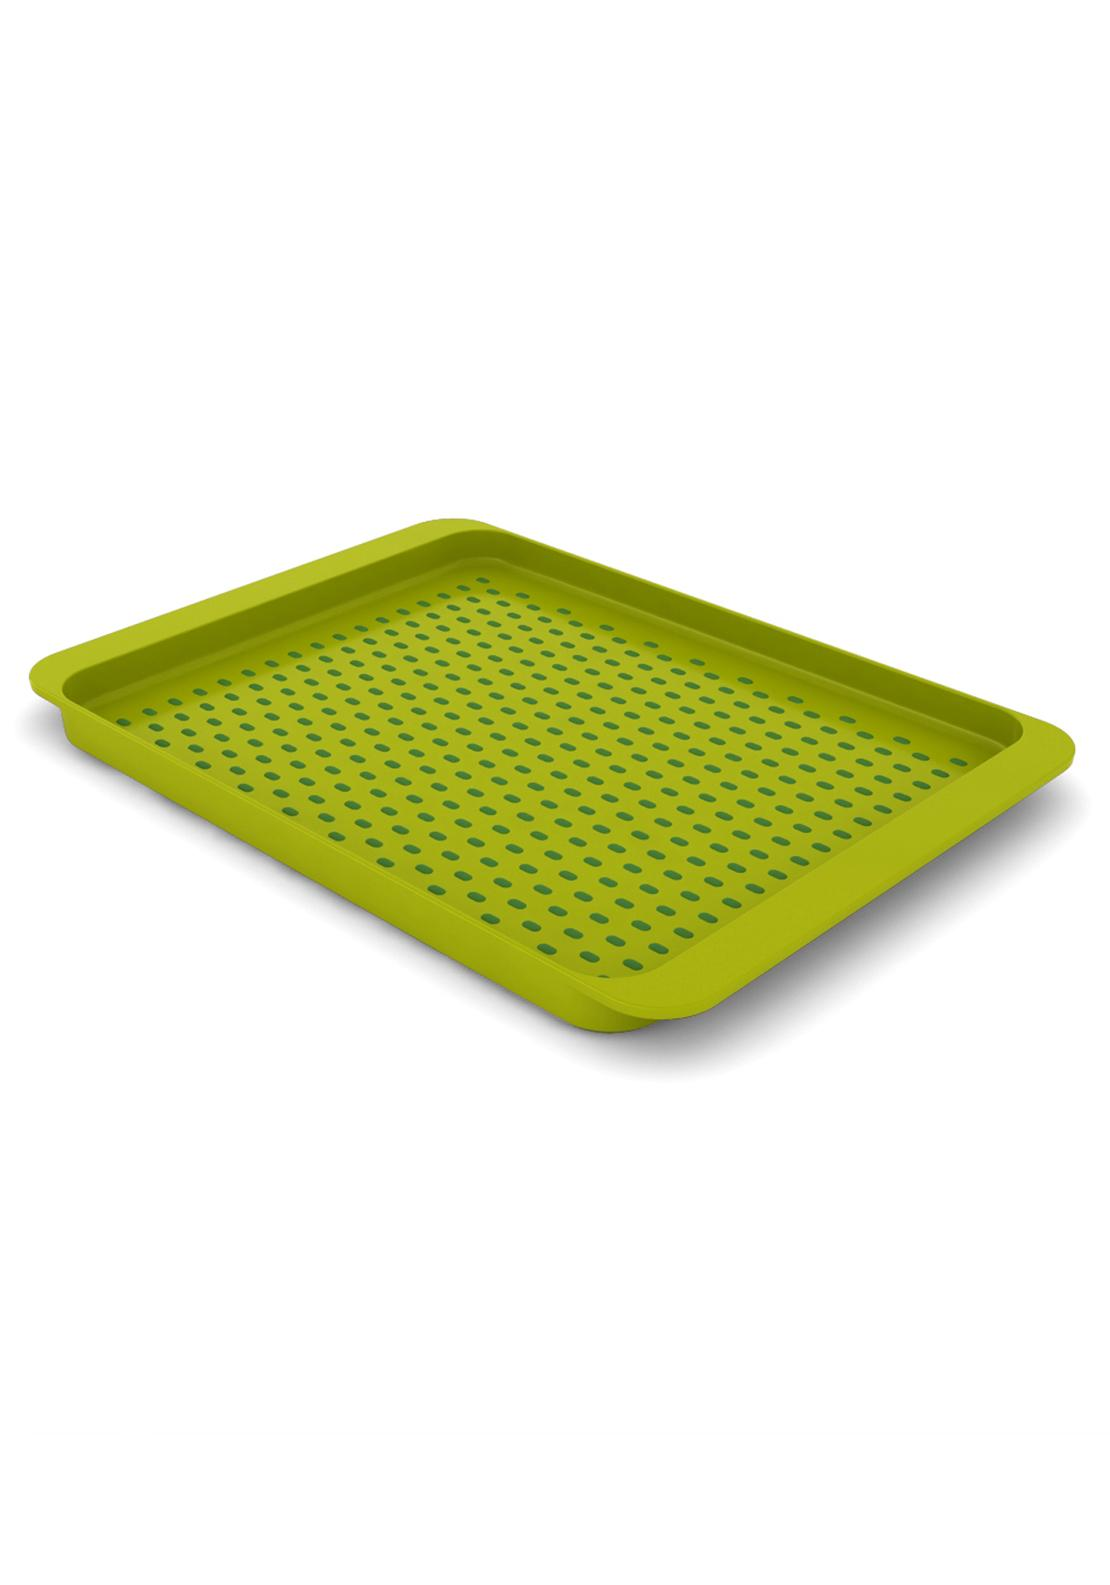 Joseph Joseph Grip Tray Large Green